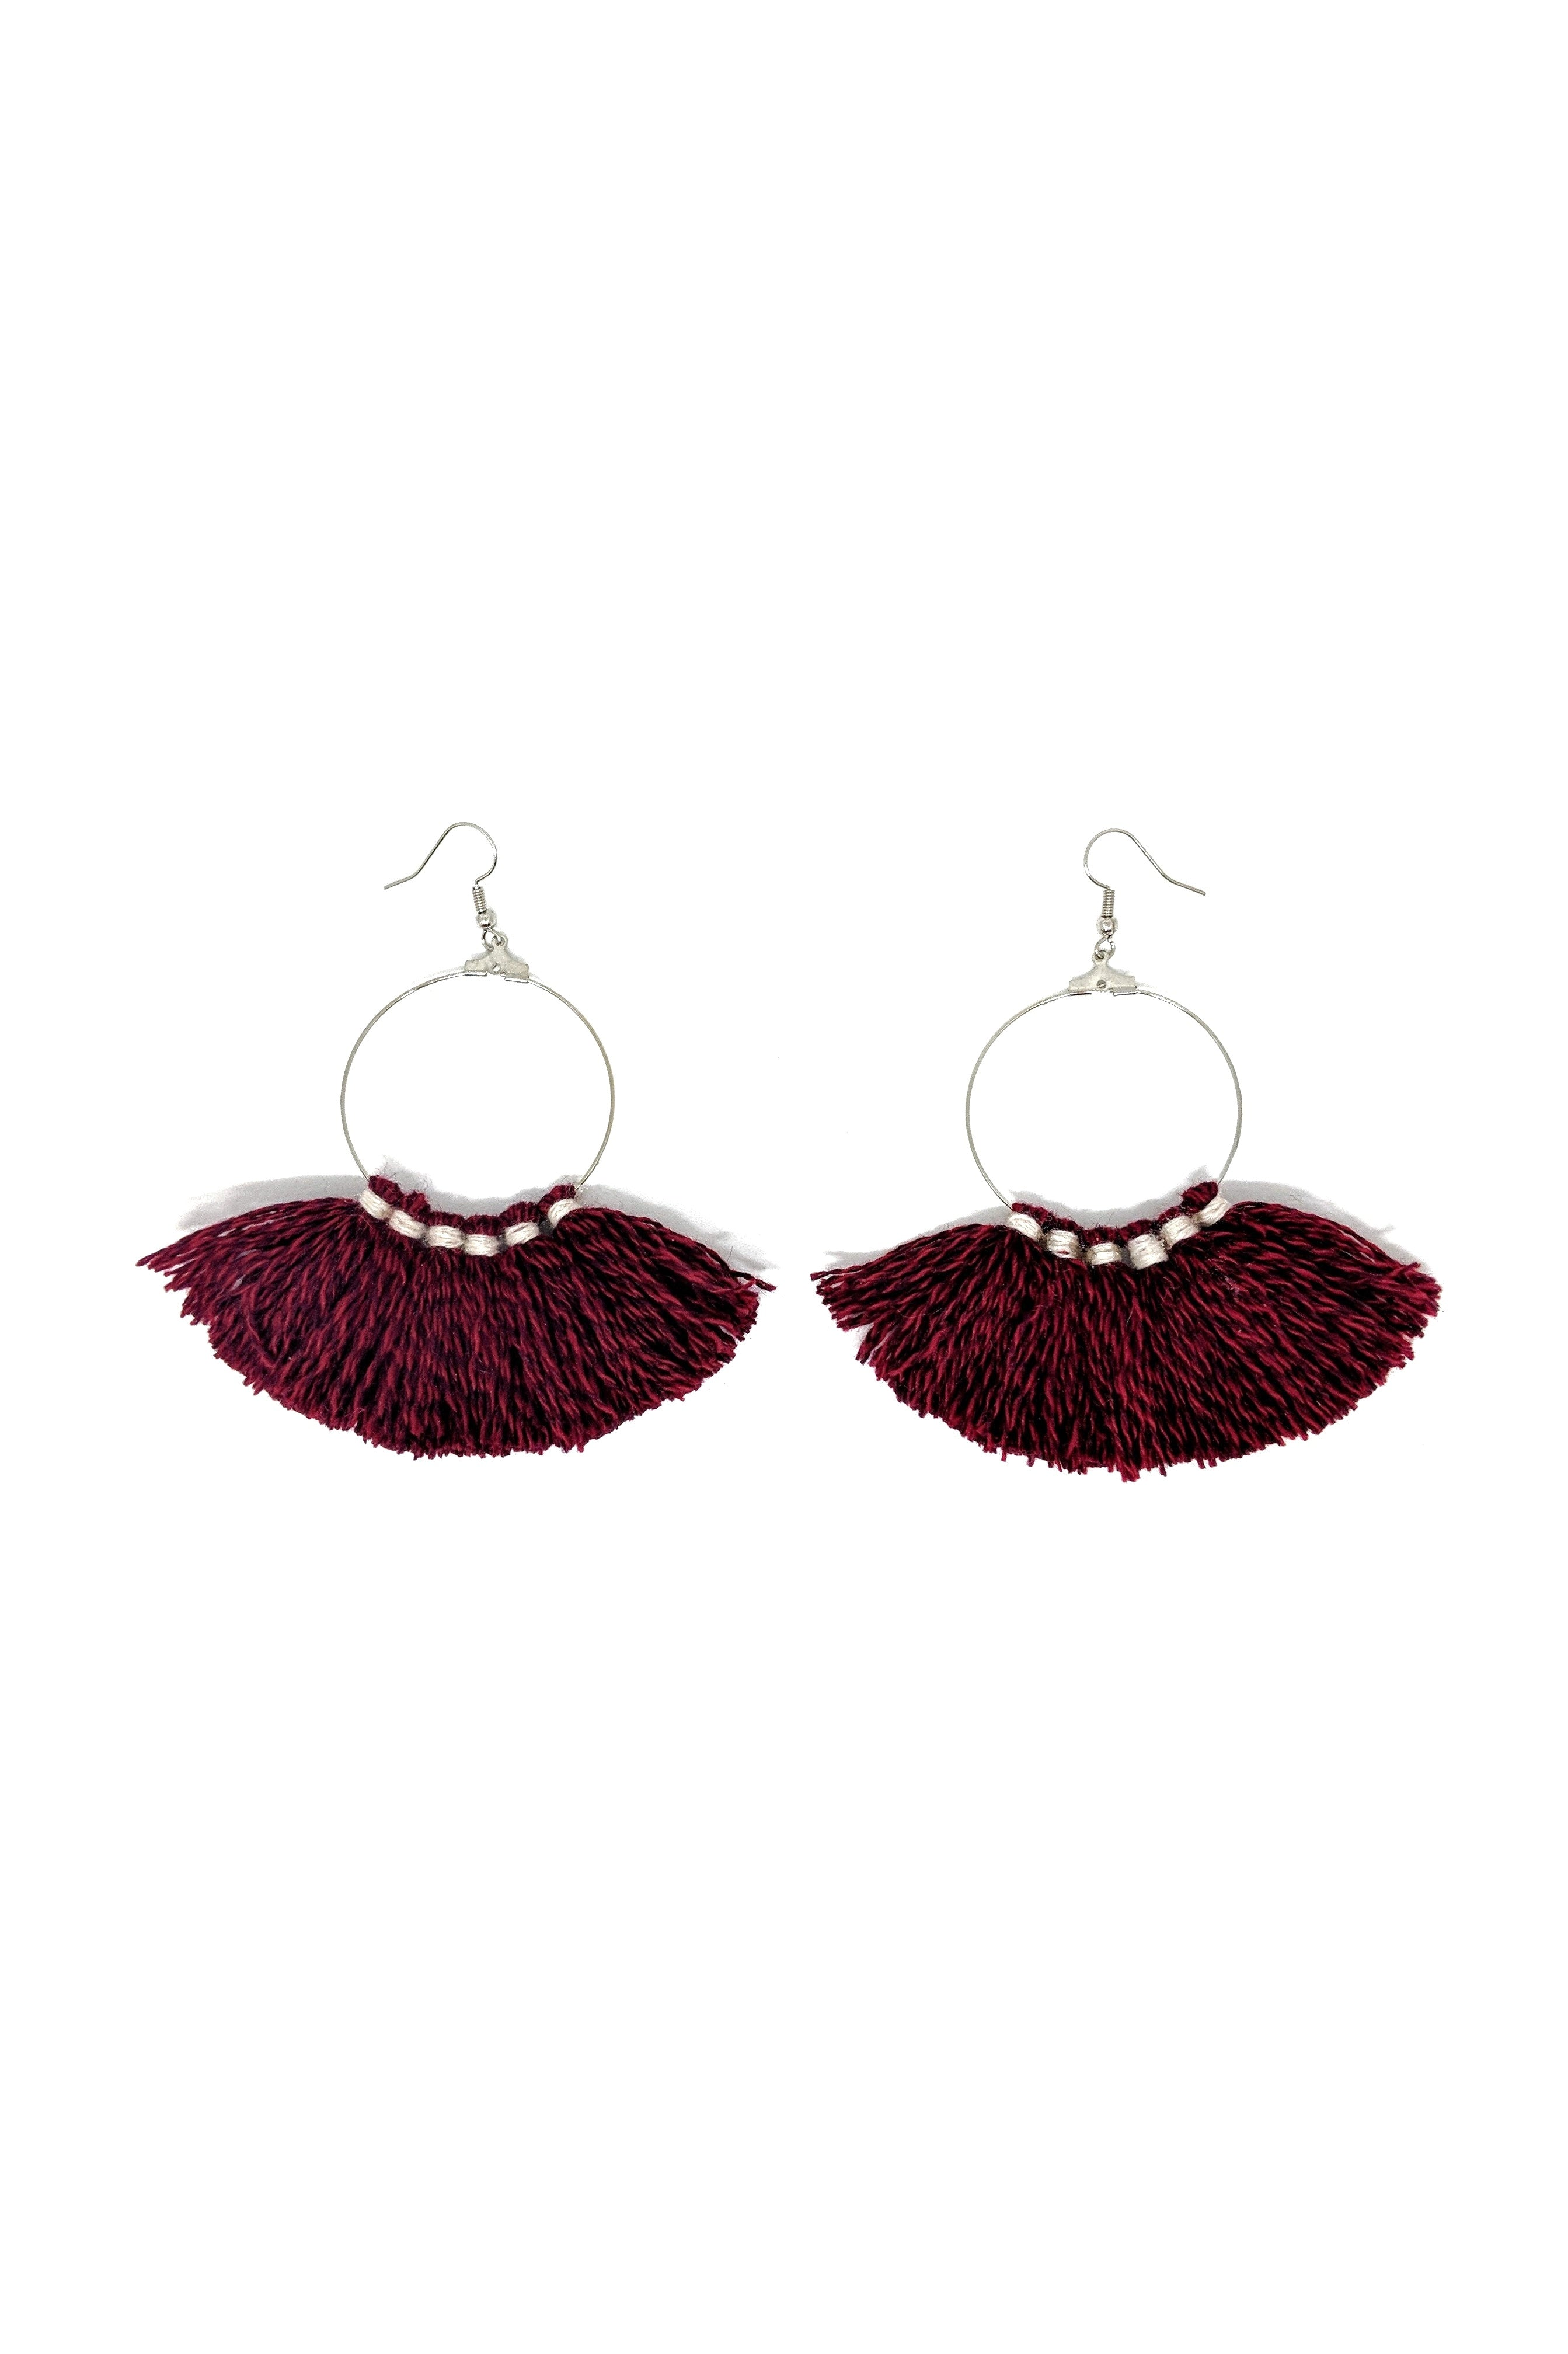 CASHMERE TASSEL HOOP EARRINGS